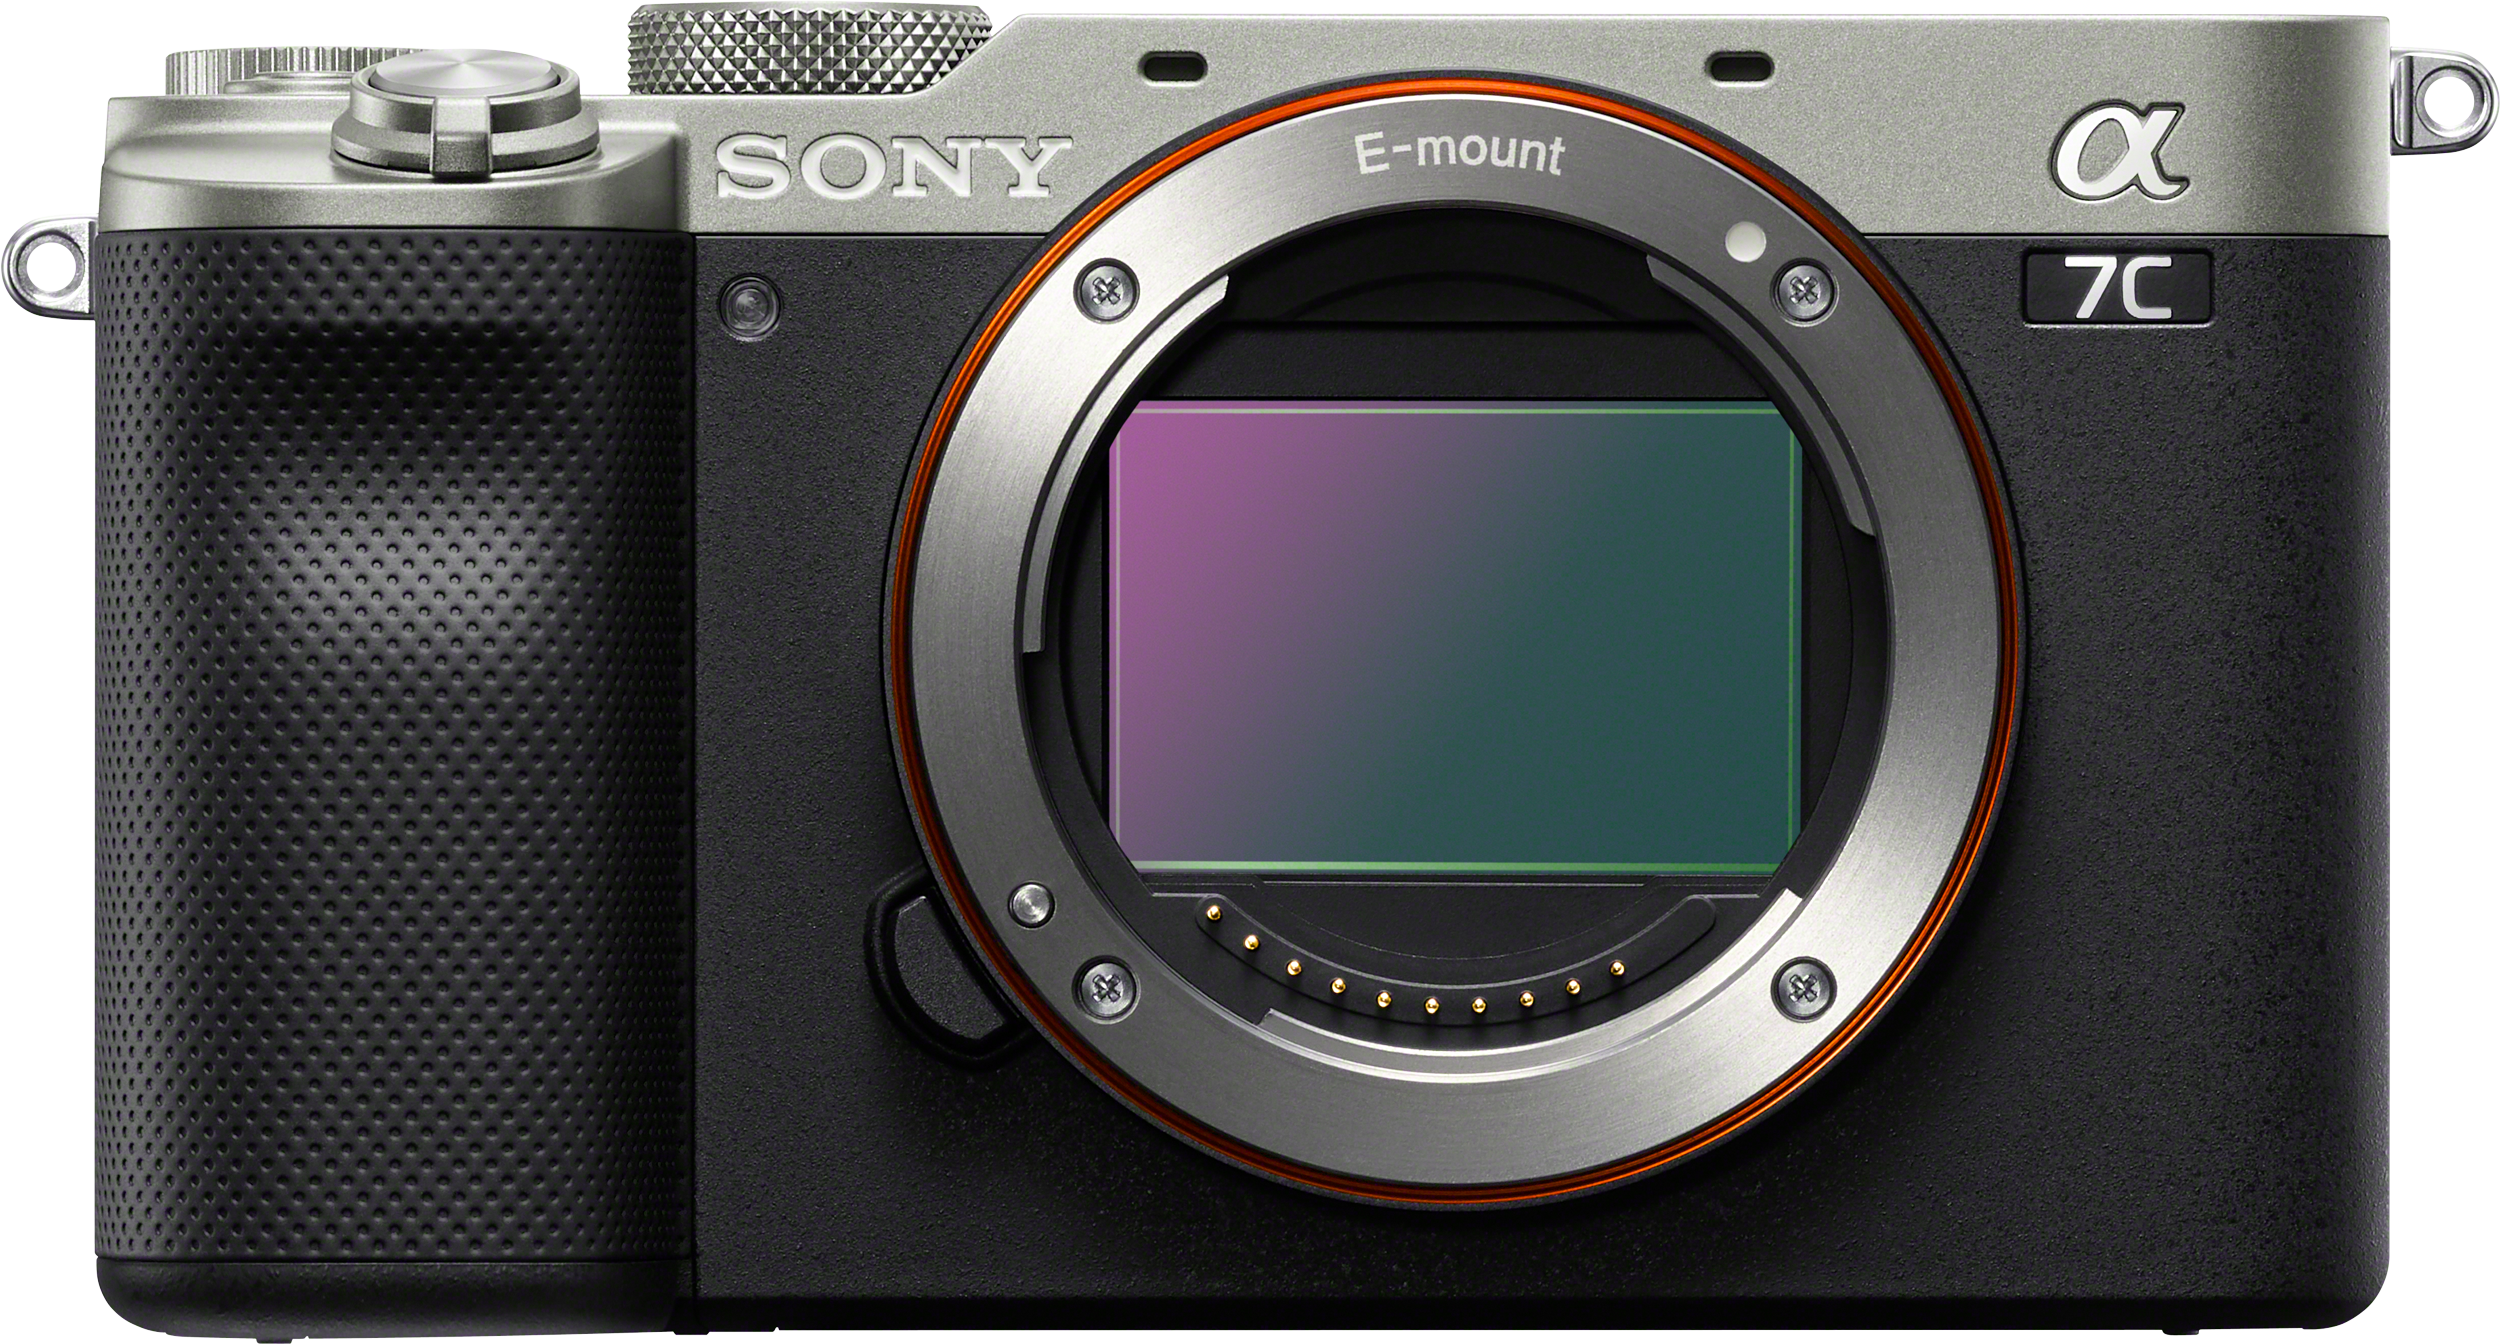 Sony a7C: Digital Photography Review